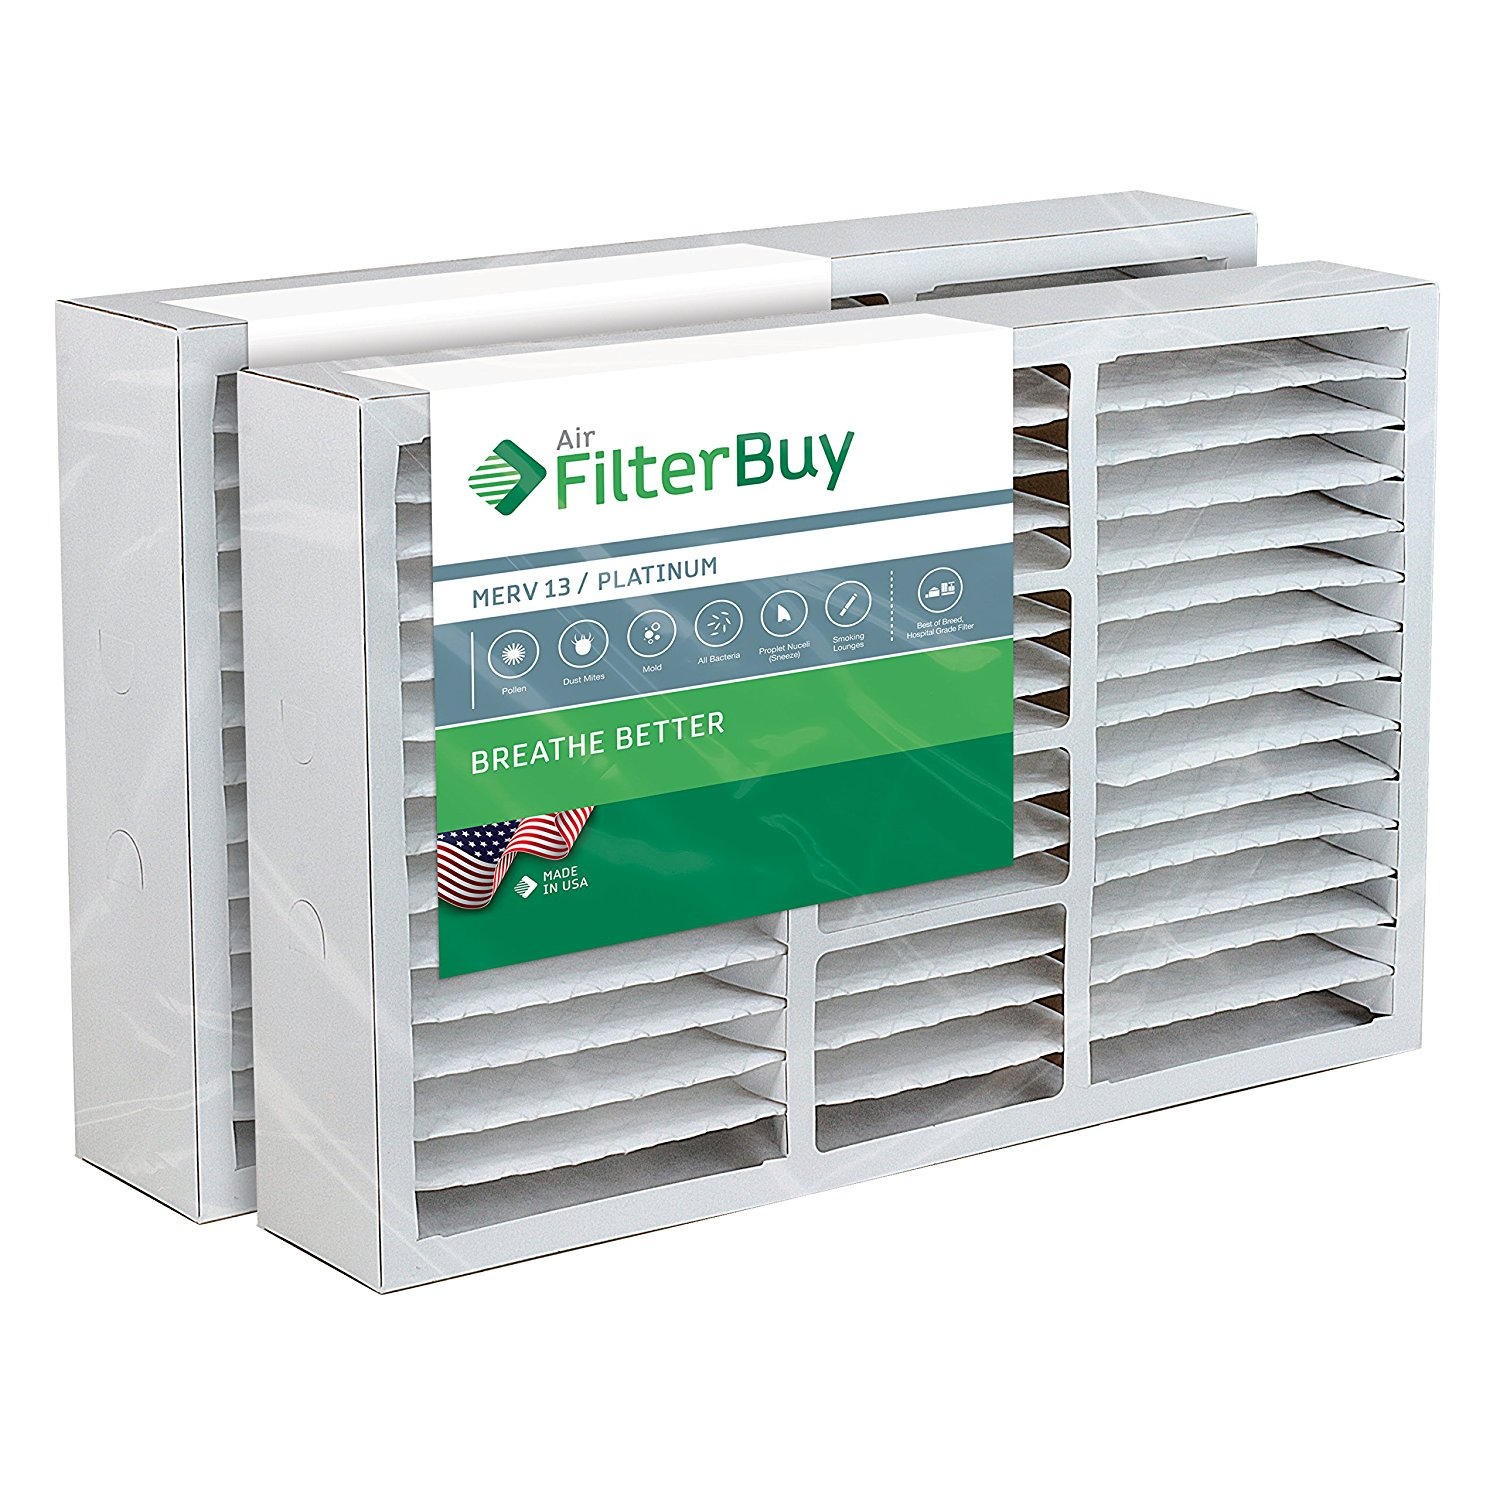 Designed to fit FILXXCAR0024 FILCCCAR0024 FilterBuy 24x25x5 Carrier Aftermarket Replacement AC Furnace Air Filters Pack of 1 Filters AFB Platinum MERV 13 FILBBCAR0024.